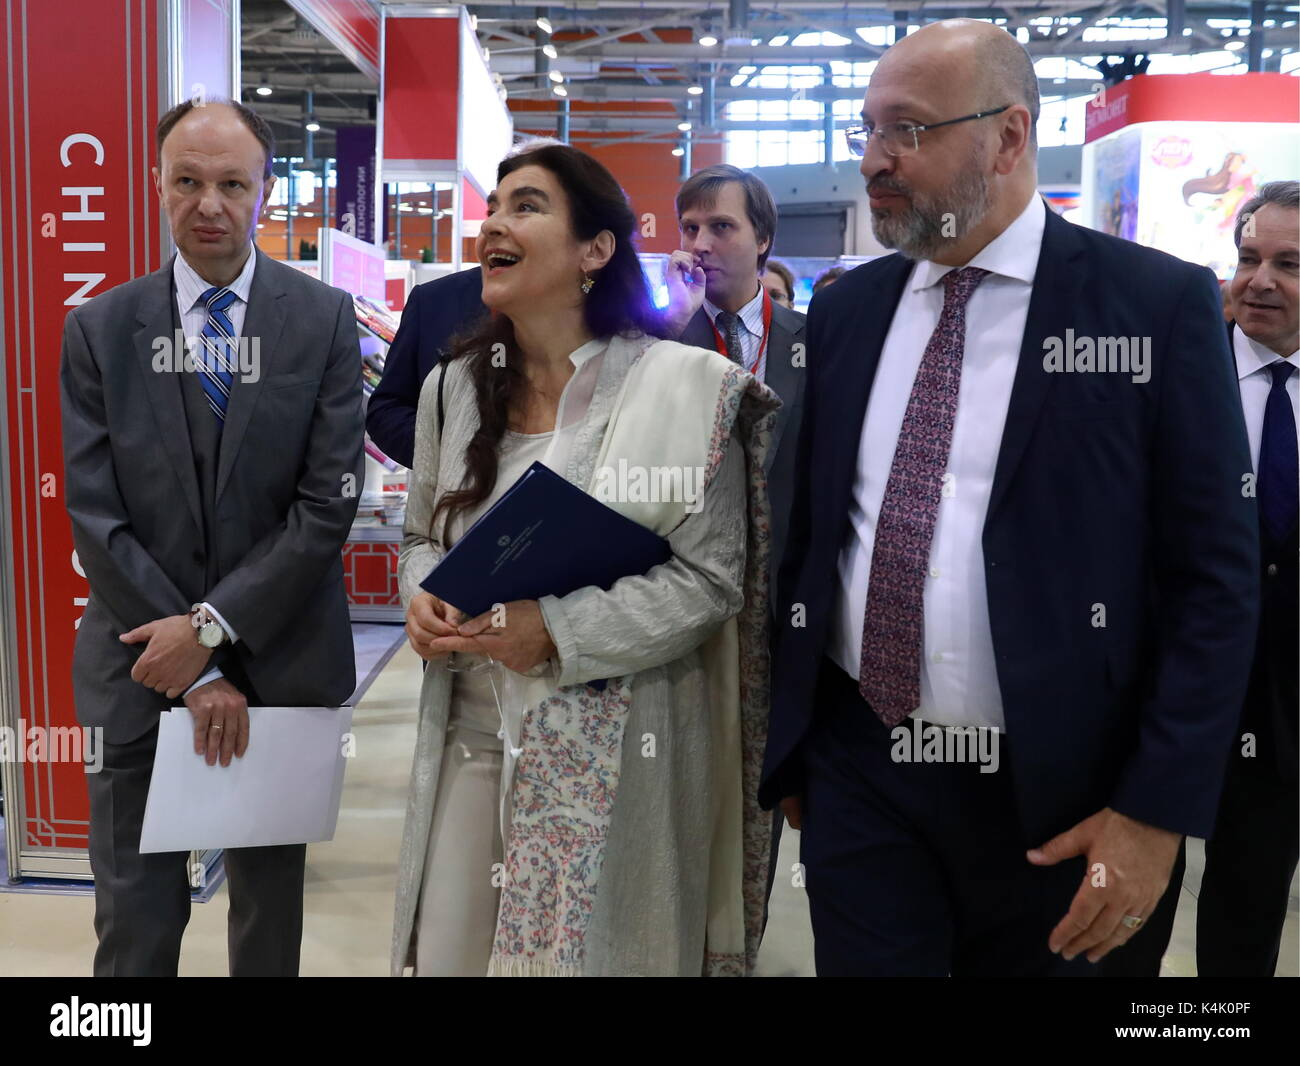 Moscow, Russia. 6th Sep, 2017. Mikhail Seslavinsky, Head of the Russian Federal Agency for Press and Mass Communication, Greece's Culture and Sport Minister Lydia Koniordou, and Konstantin Antipov (L-R), Integration Vice Rector of the Moscow Polytechnic University and Director of the Moscow Polytech Higher School for Printing and Media Industry, visit the 30th Moscow International Book Fair at Moscow's VDNKh Exhibition Centre. Credit: Sergei Fadeichev/TASS/Alamy Live News - Stock Image